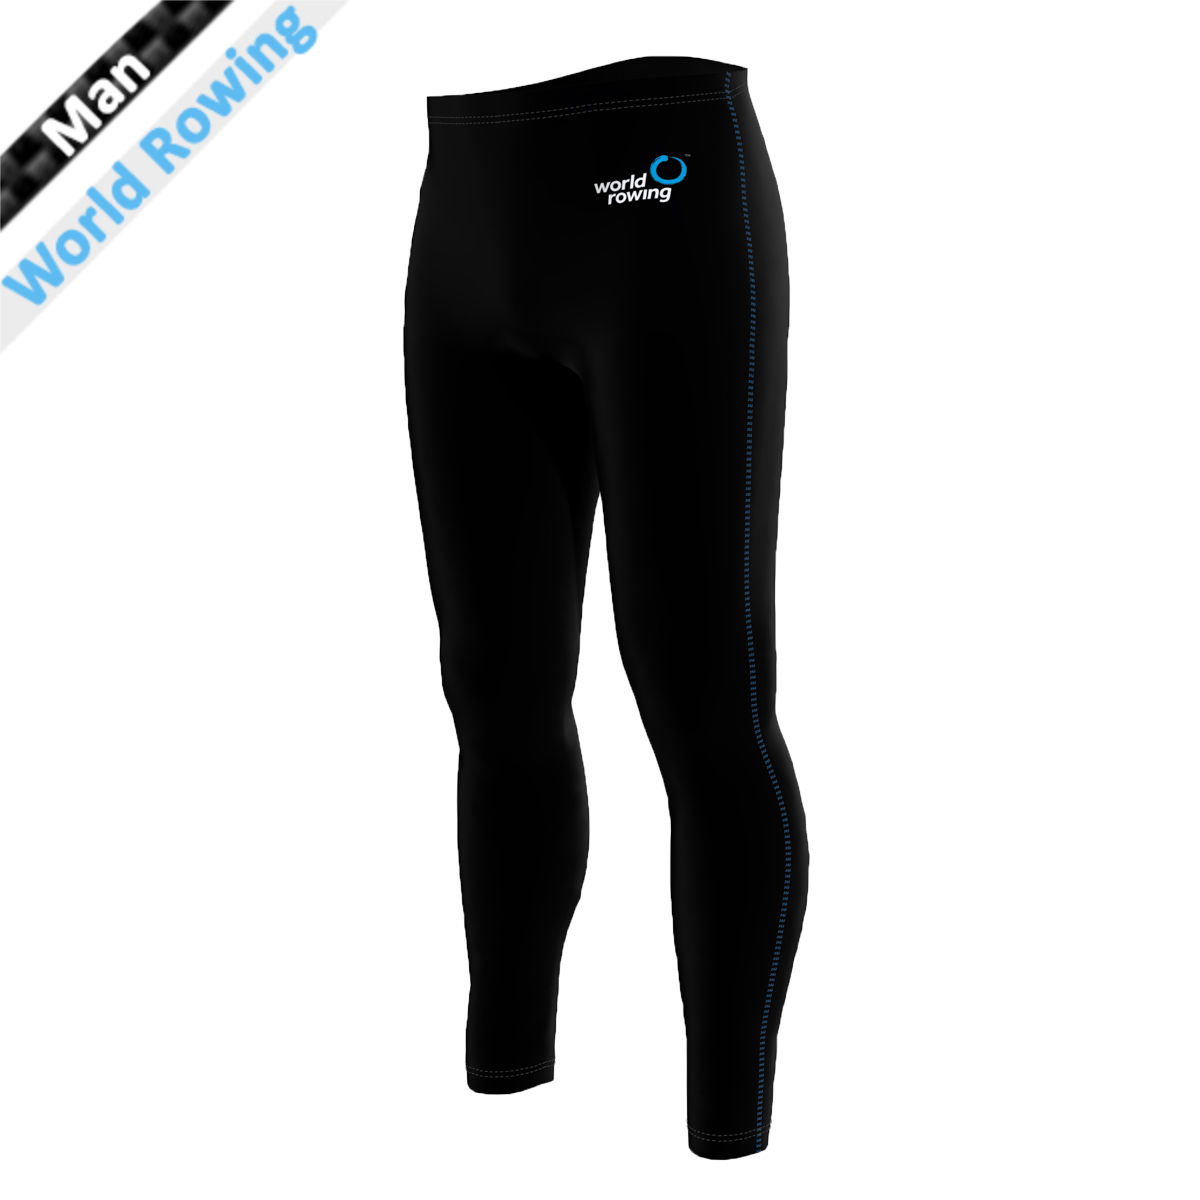 World Rowing Tights - schwarz